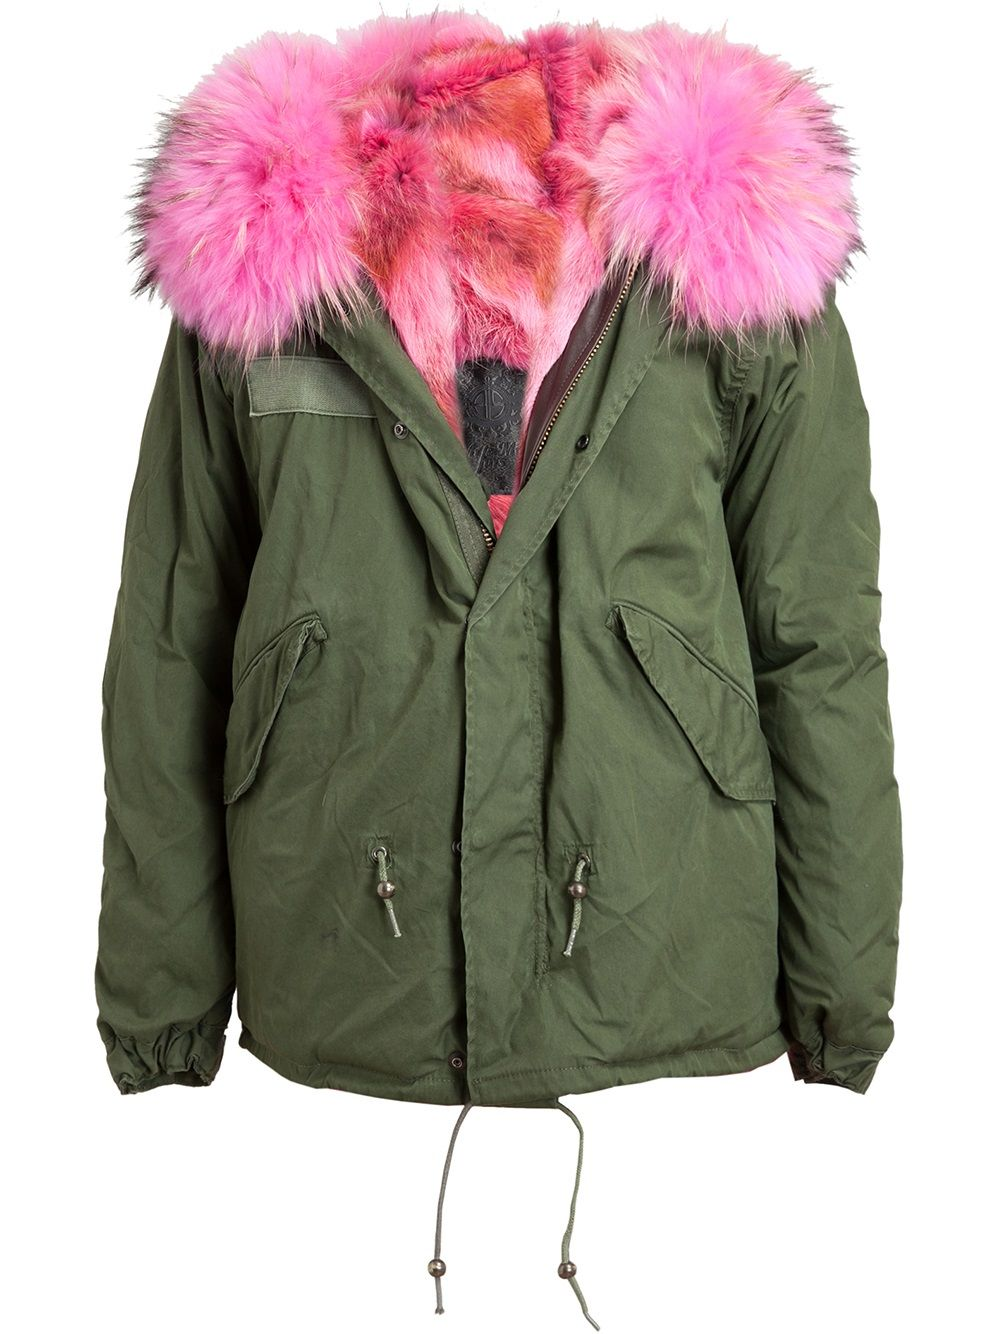 25bf7f190b7 Obviously, I need this coat.   AKA DIVA in 2019   Pink fur jacket ...